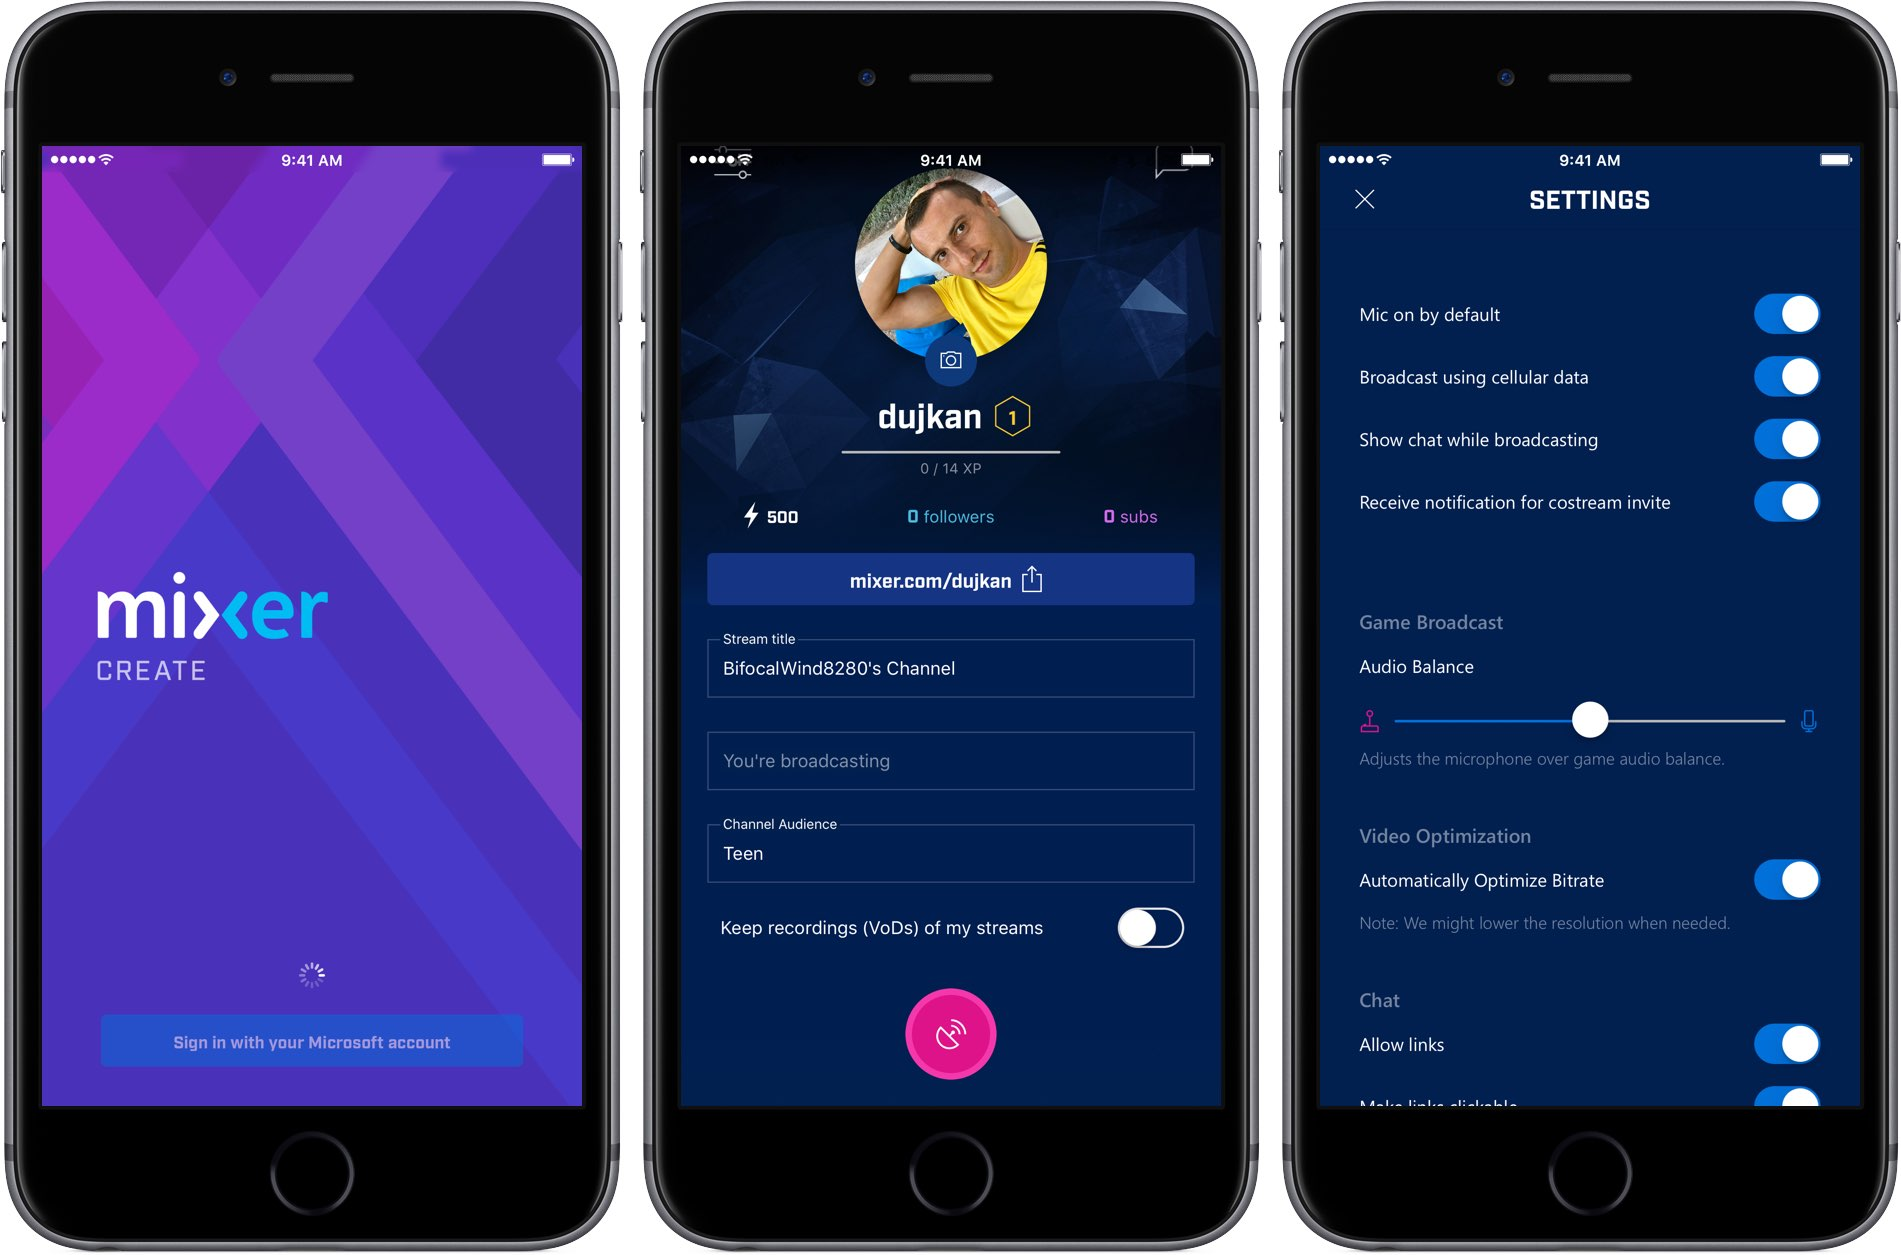 Microsoft Releases Mixer Create App For Broadcasting